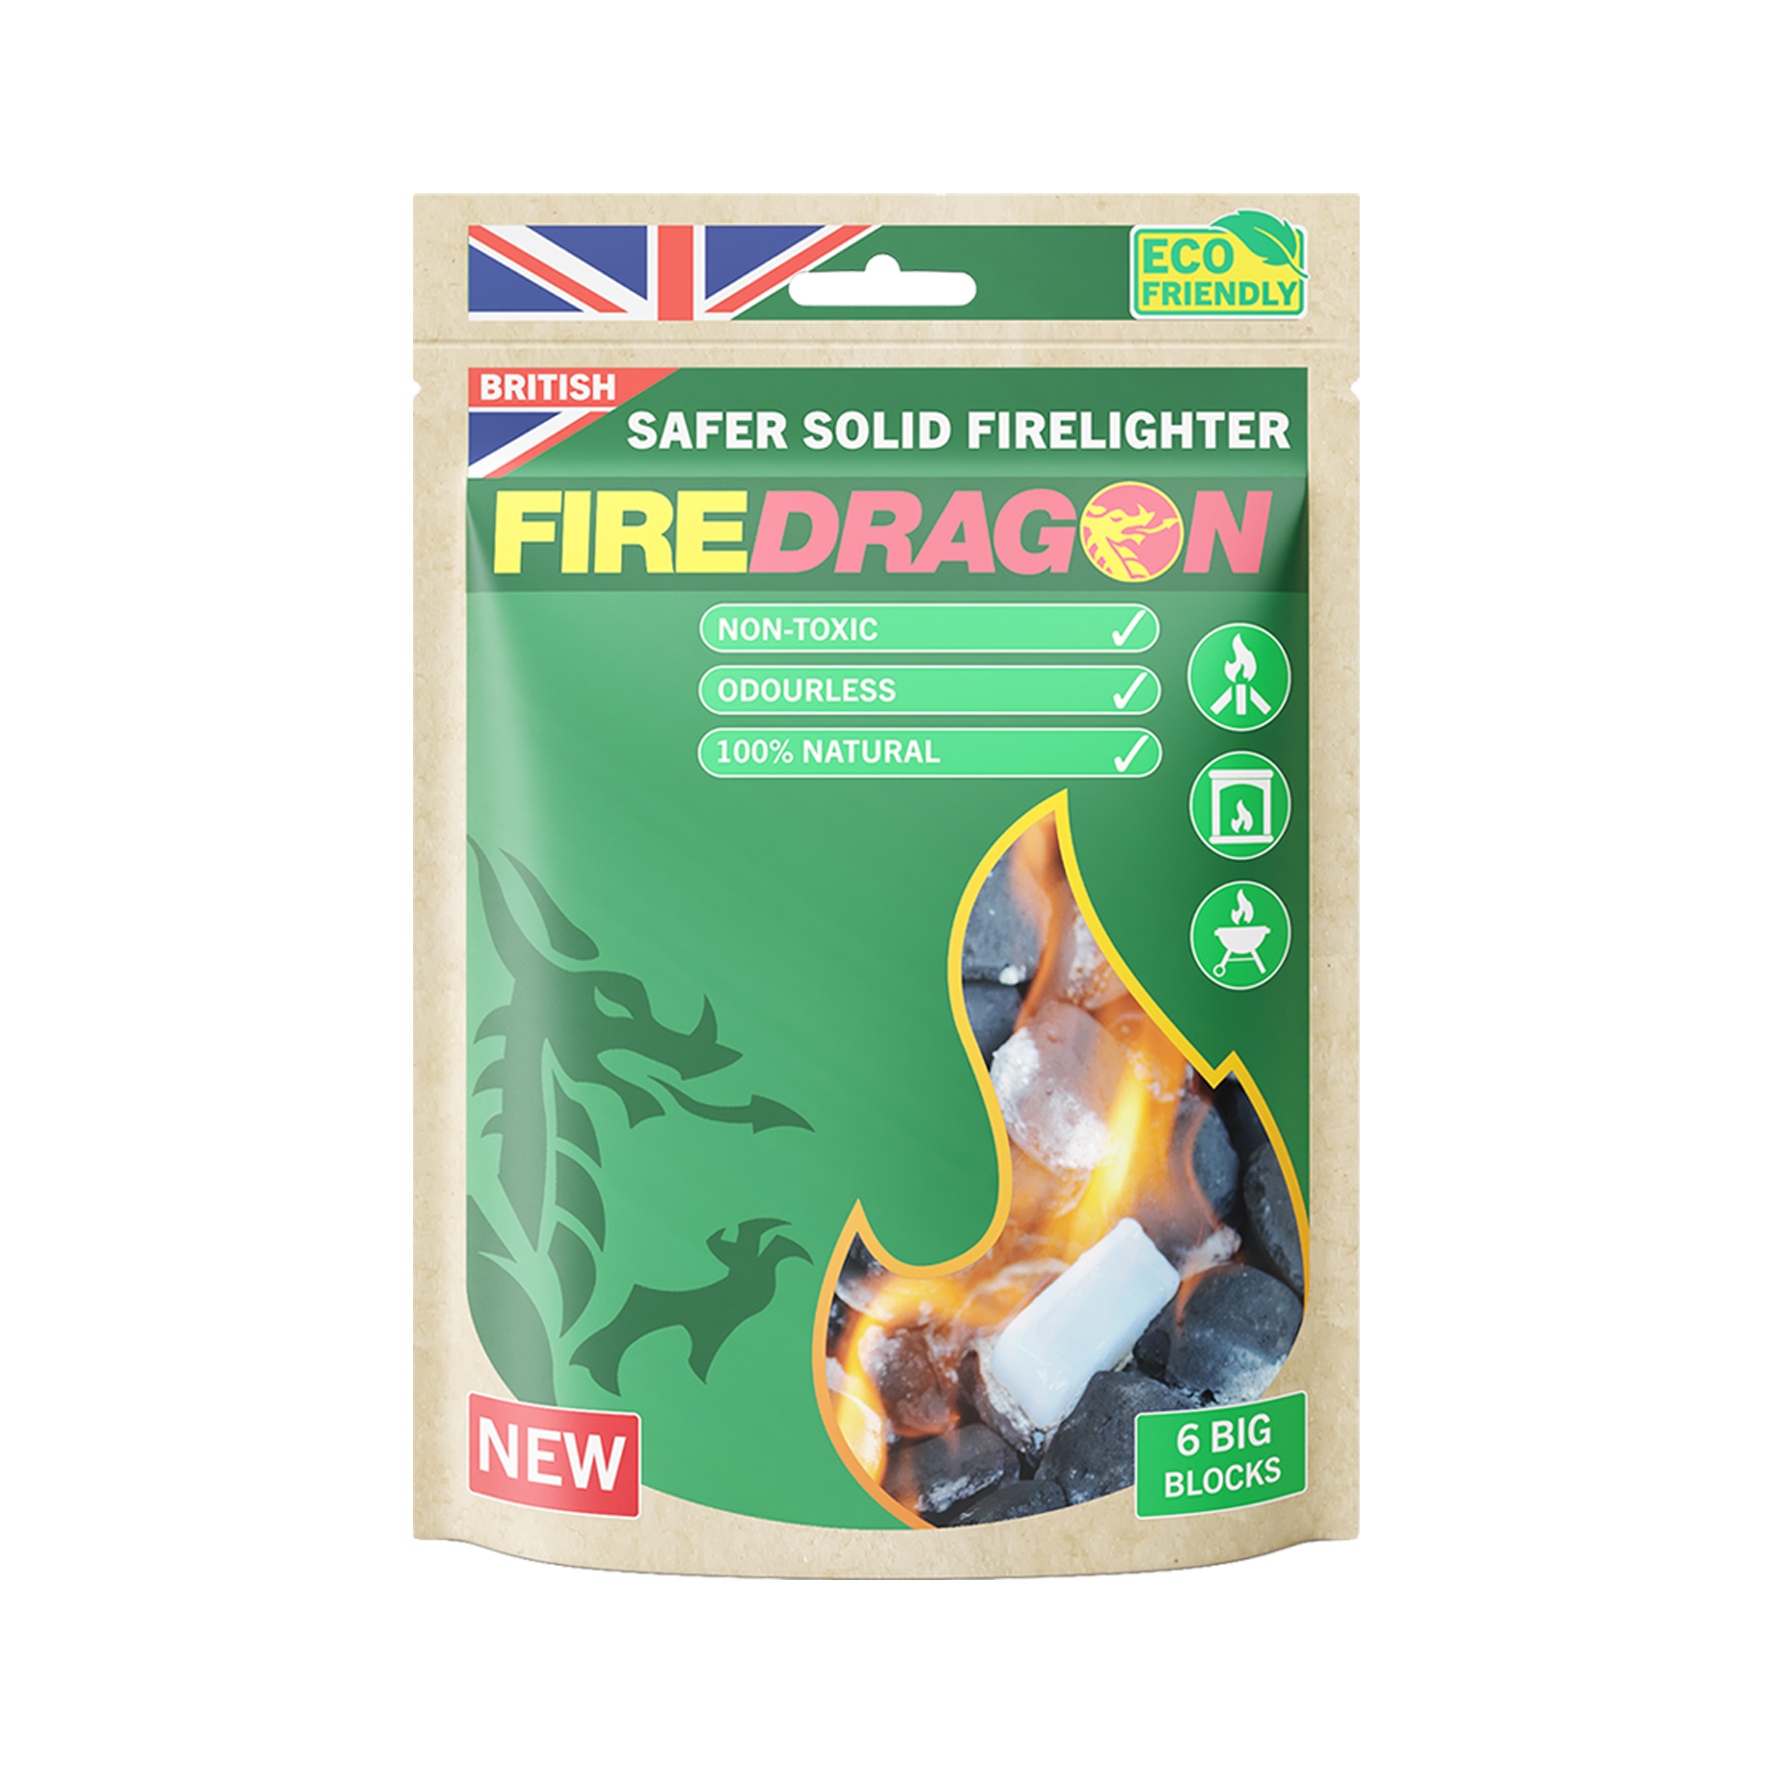 FireDragon Solid eco-friendly Firelighter and fuel pack of 6 packaging